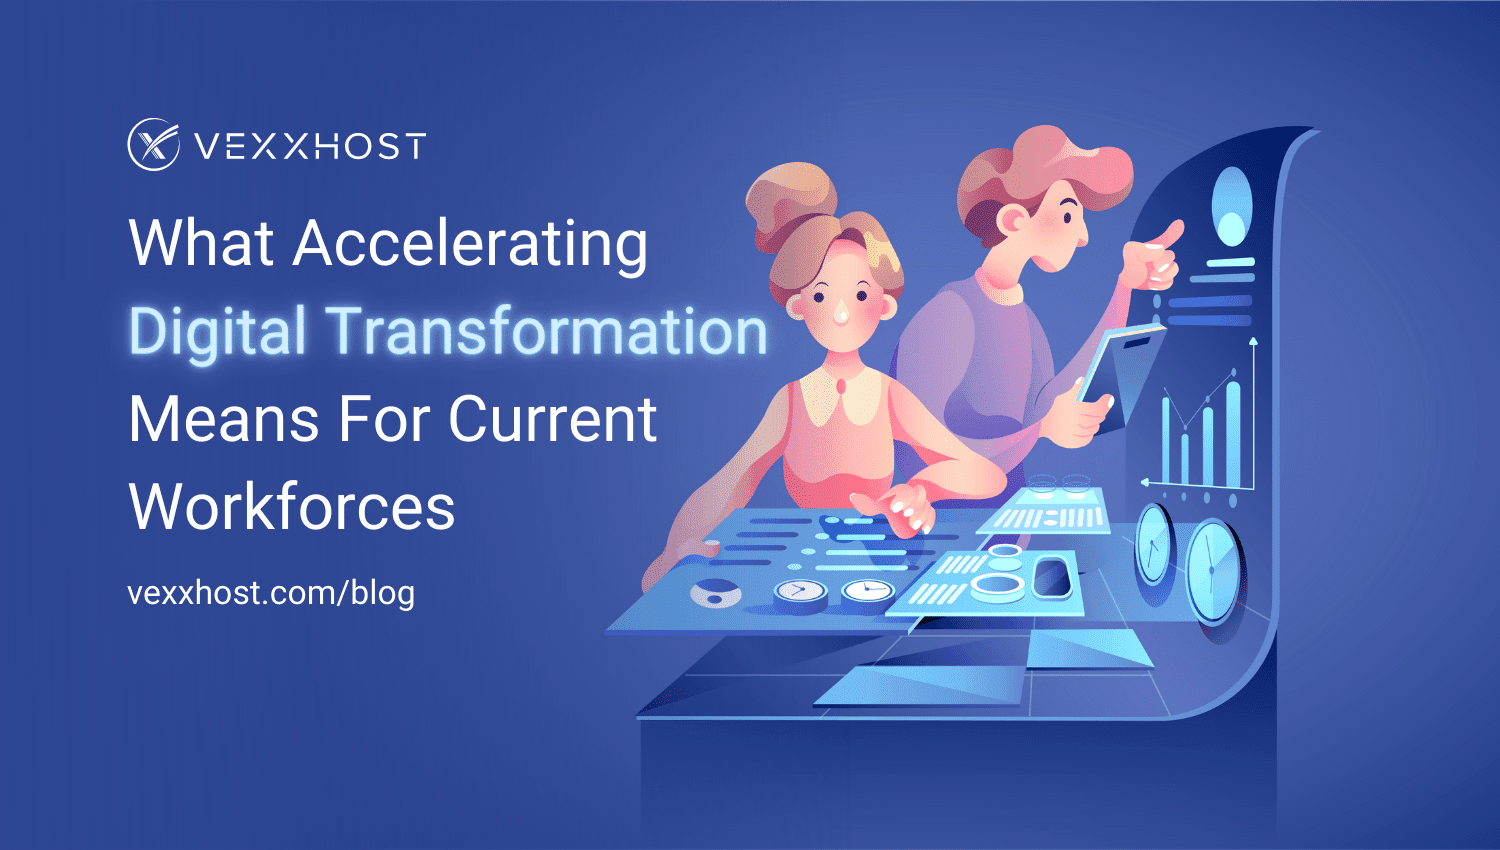 What Accelerating Digital Transformation Means for Current Workforces